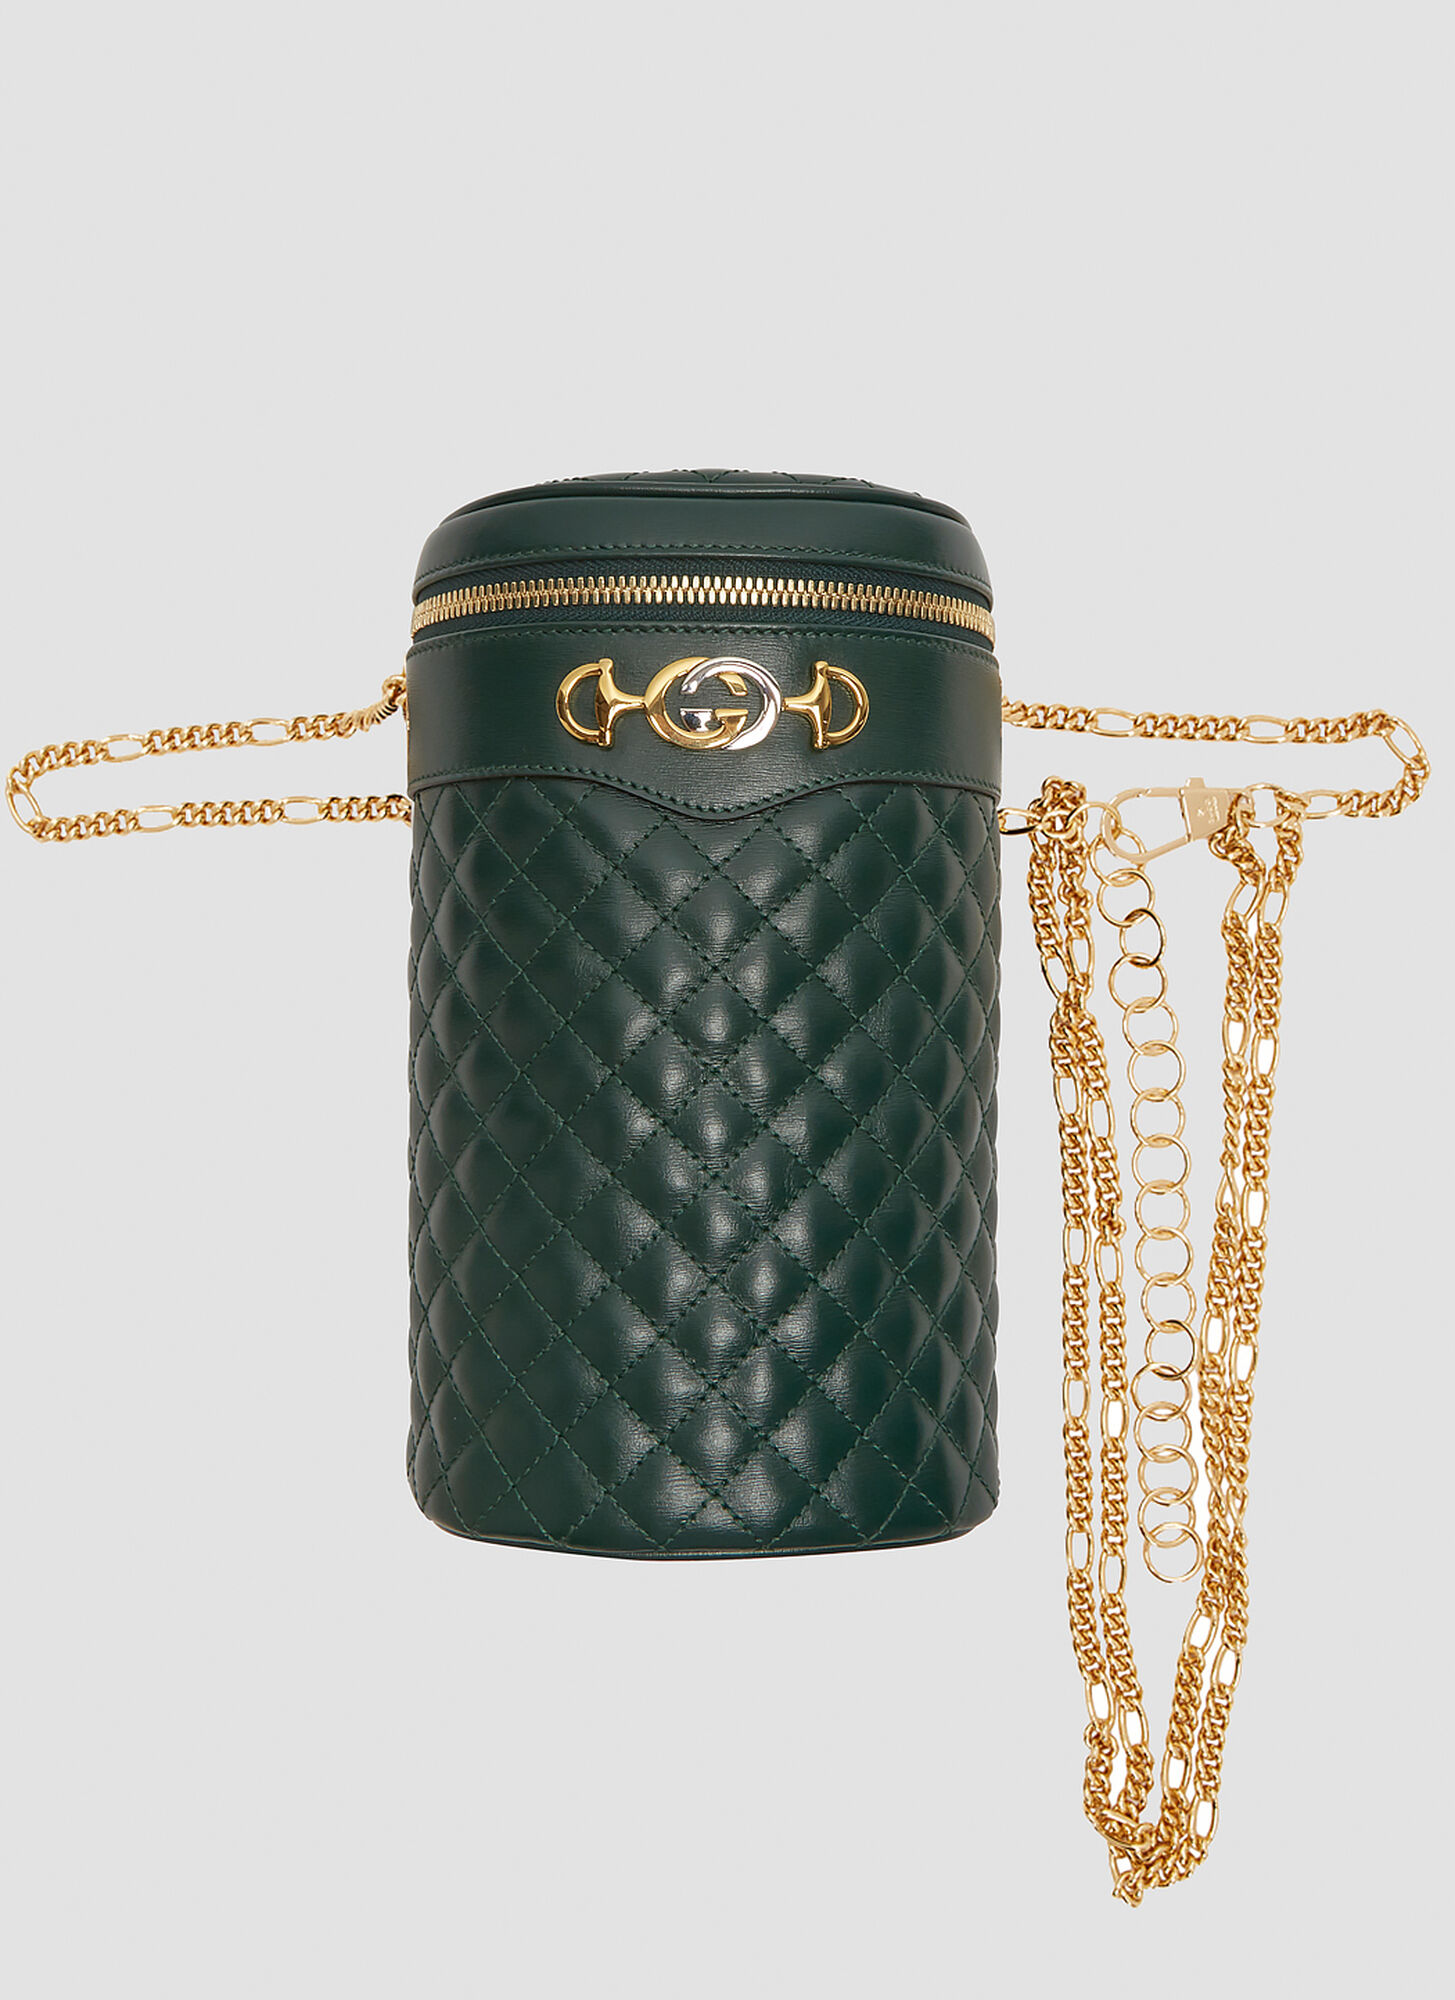 Gucci Quilted Leather Chain Bag in Green